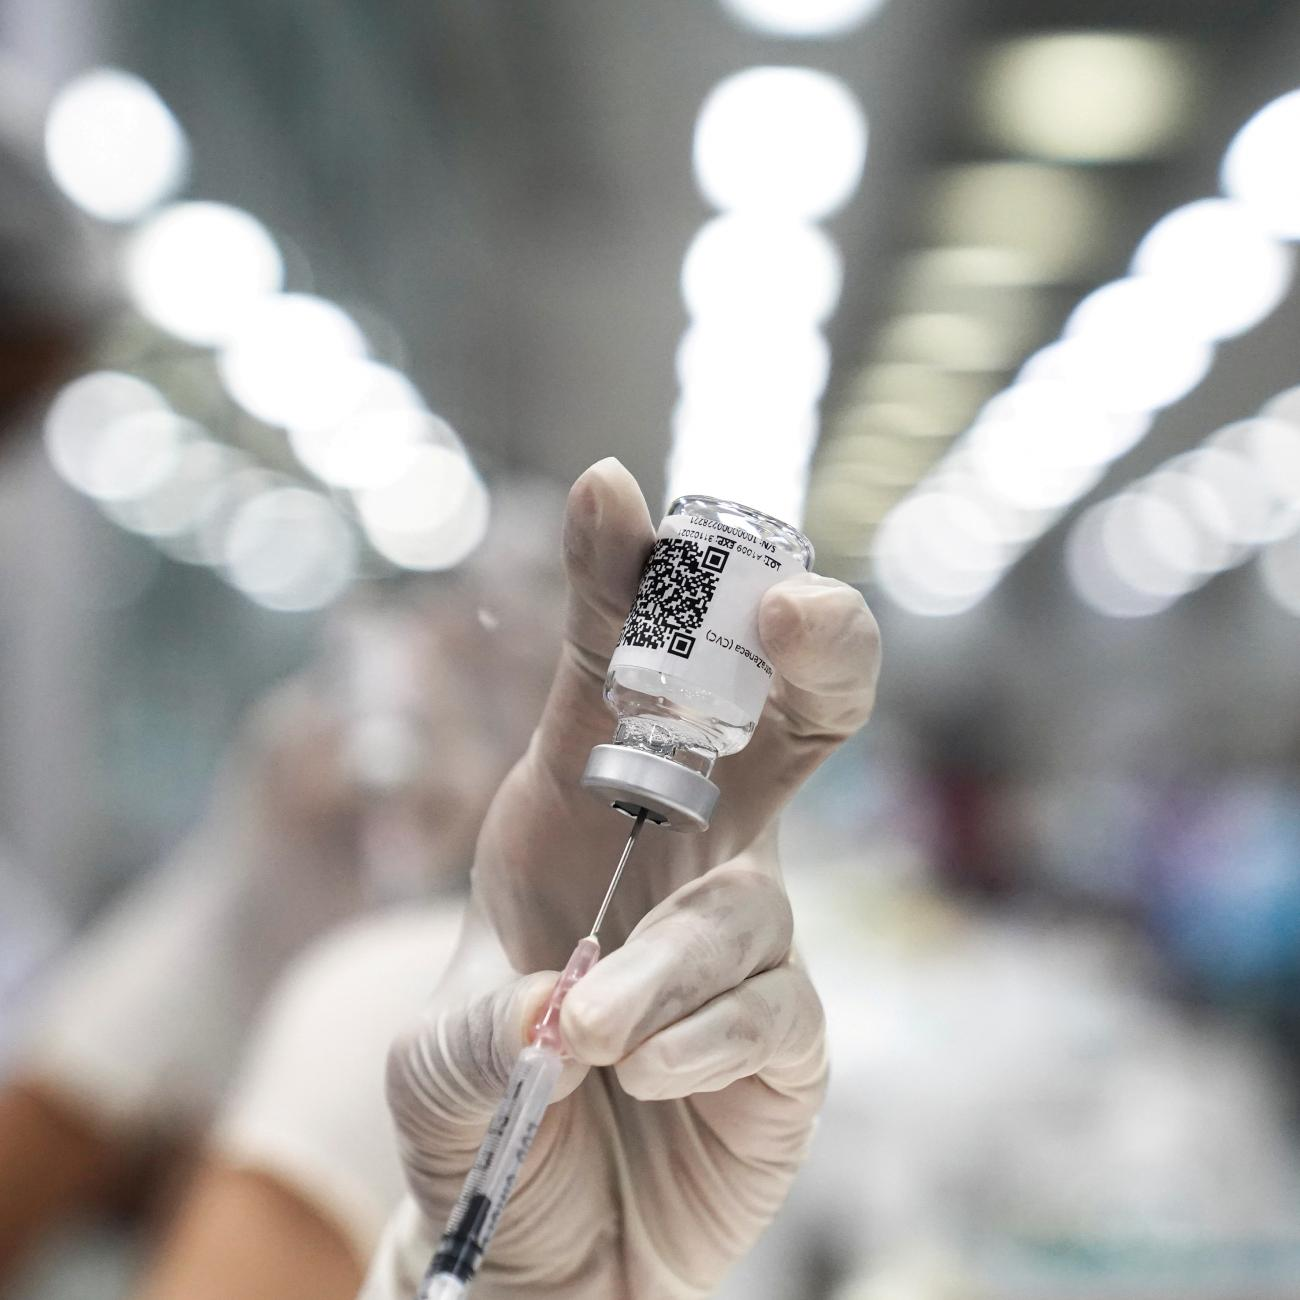 A health worker prepares a dose of AstraZeneca COVID-19 vaccine at the Central Vaccination Center inside the Bang Sue Grand Station (railway station), in Bangkok, Thailand, on June 21, 2021.